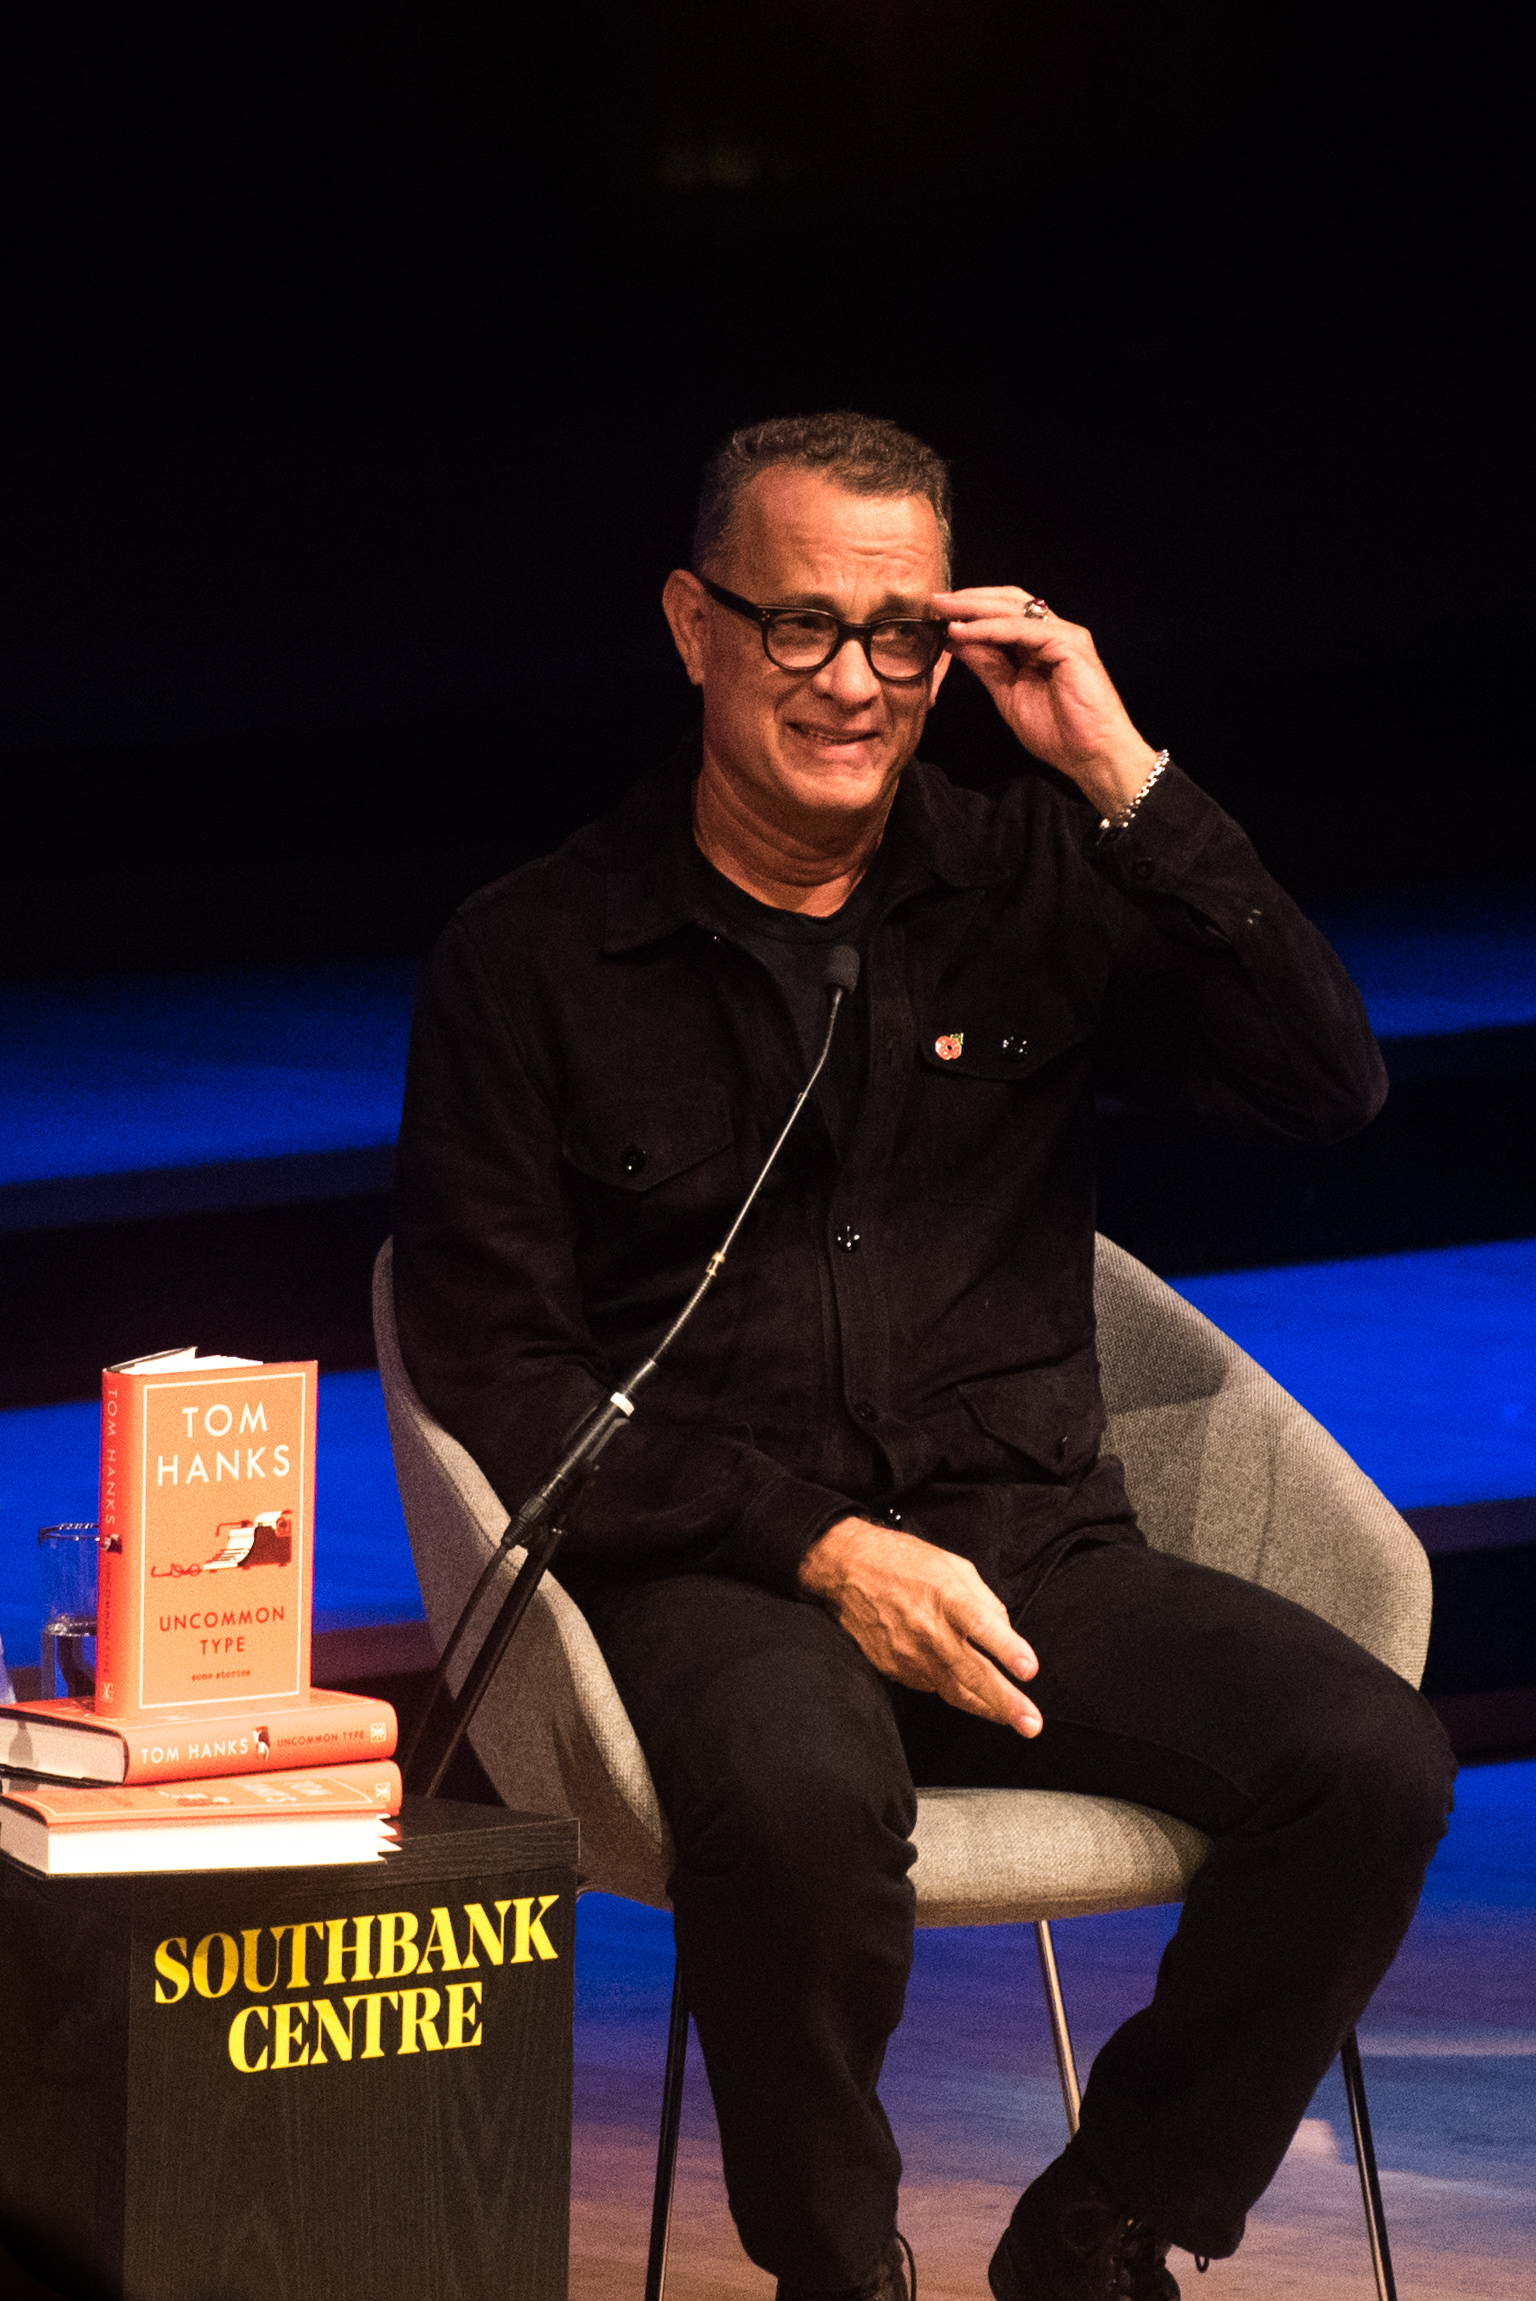 Tom Hanks at the Southbank Centre's London Literature Festival.